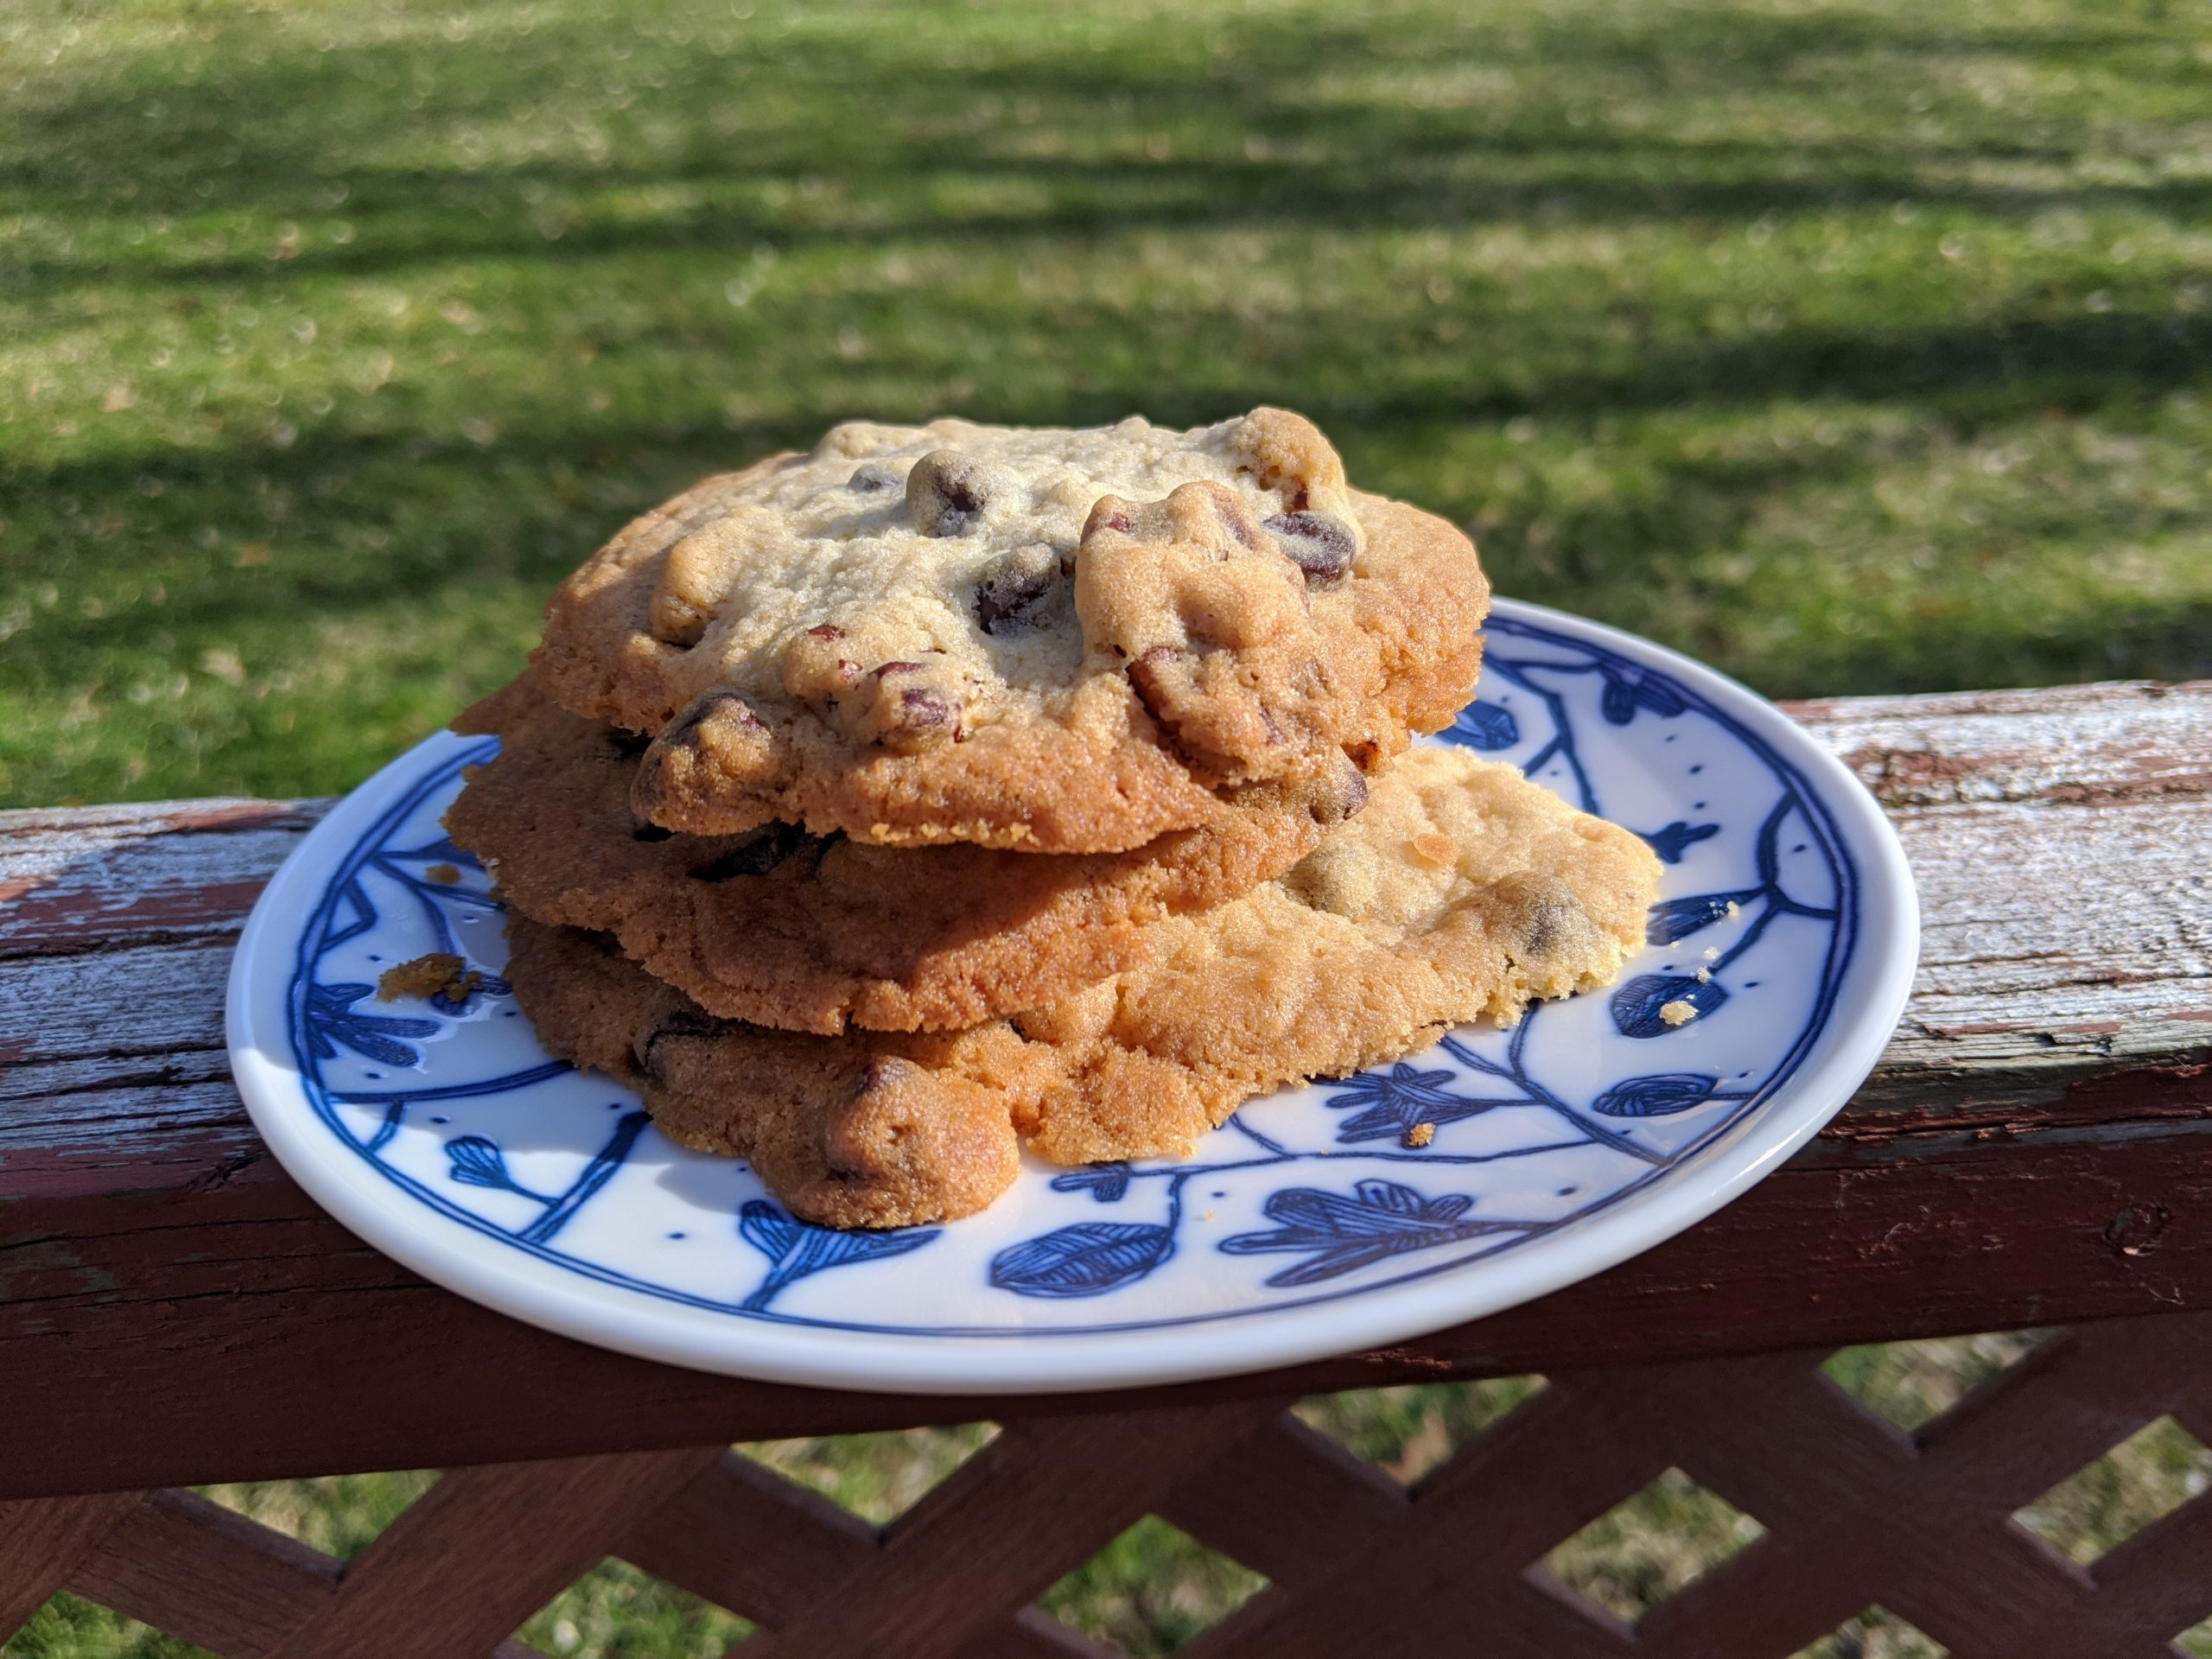 Pecan Chocolate Chip Cookies | Baking with few ingredients | Pantry Staple cooking